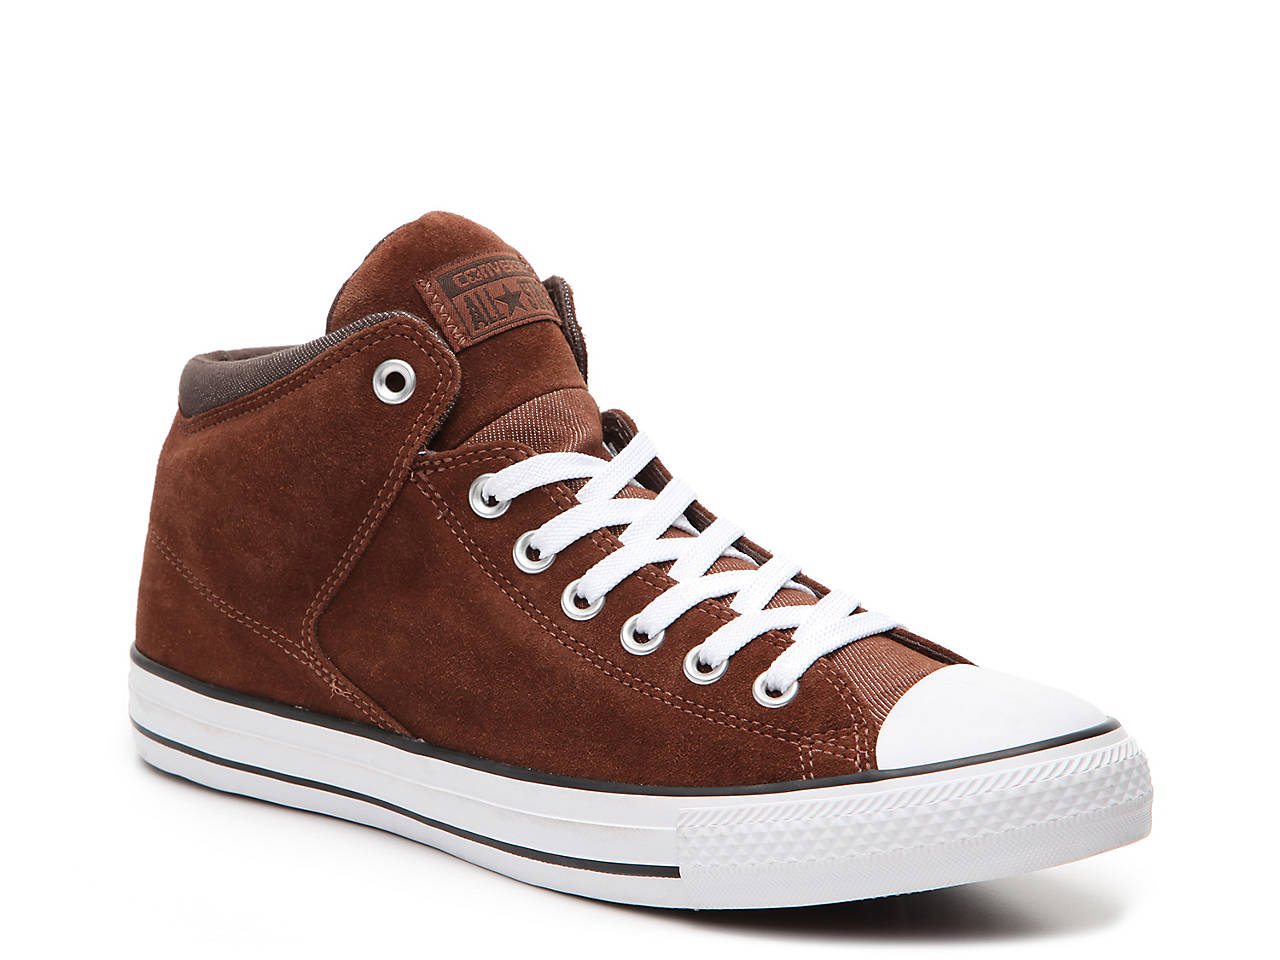 c534111e0306 Converse Chuck Taylor All Star Hi Street Thermal High-Top Sneaker ...